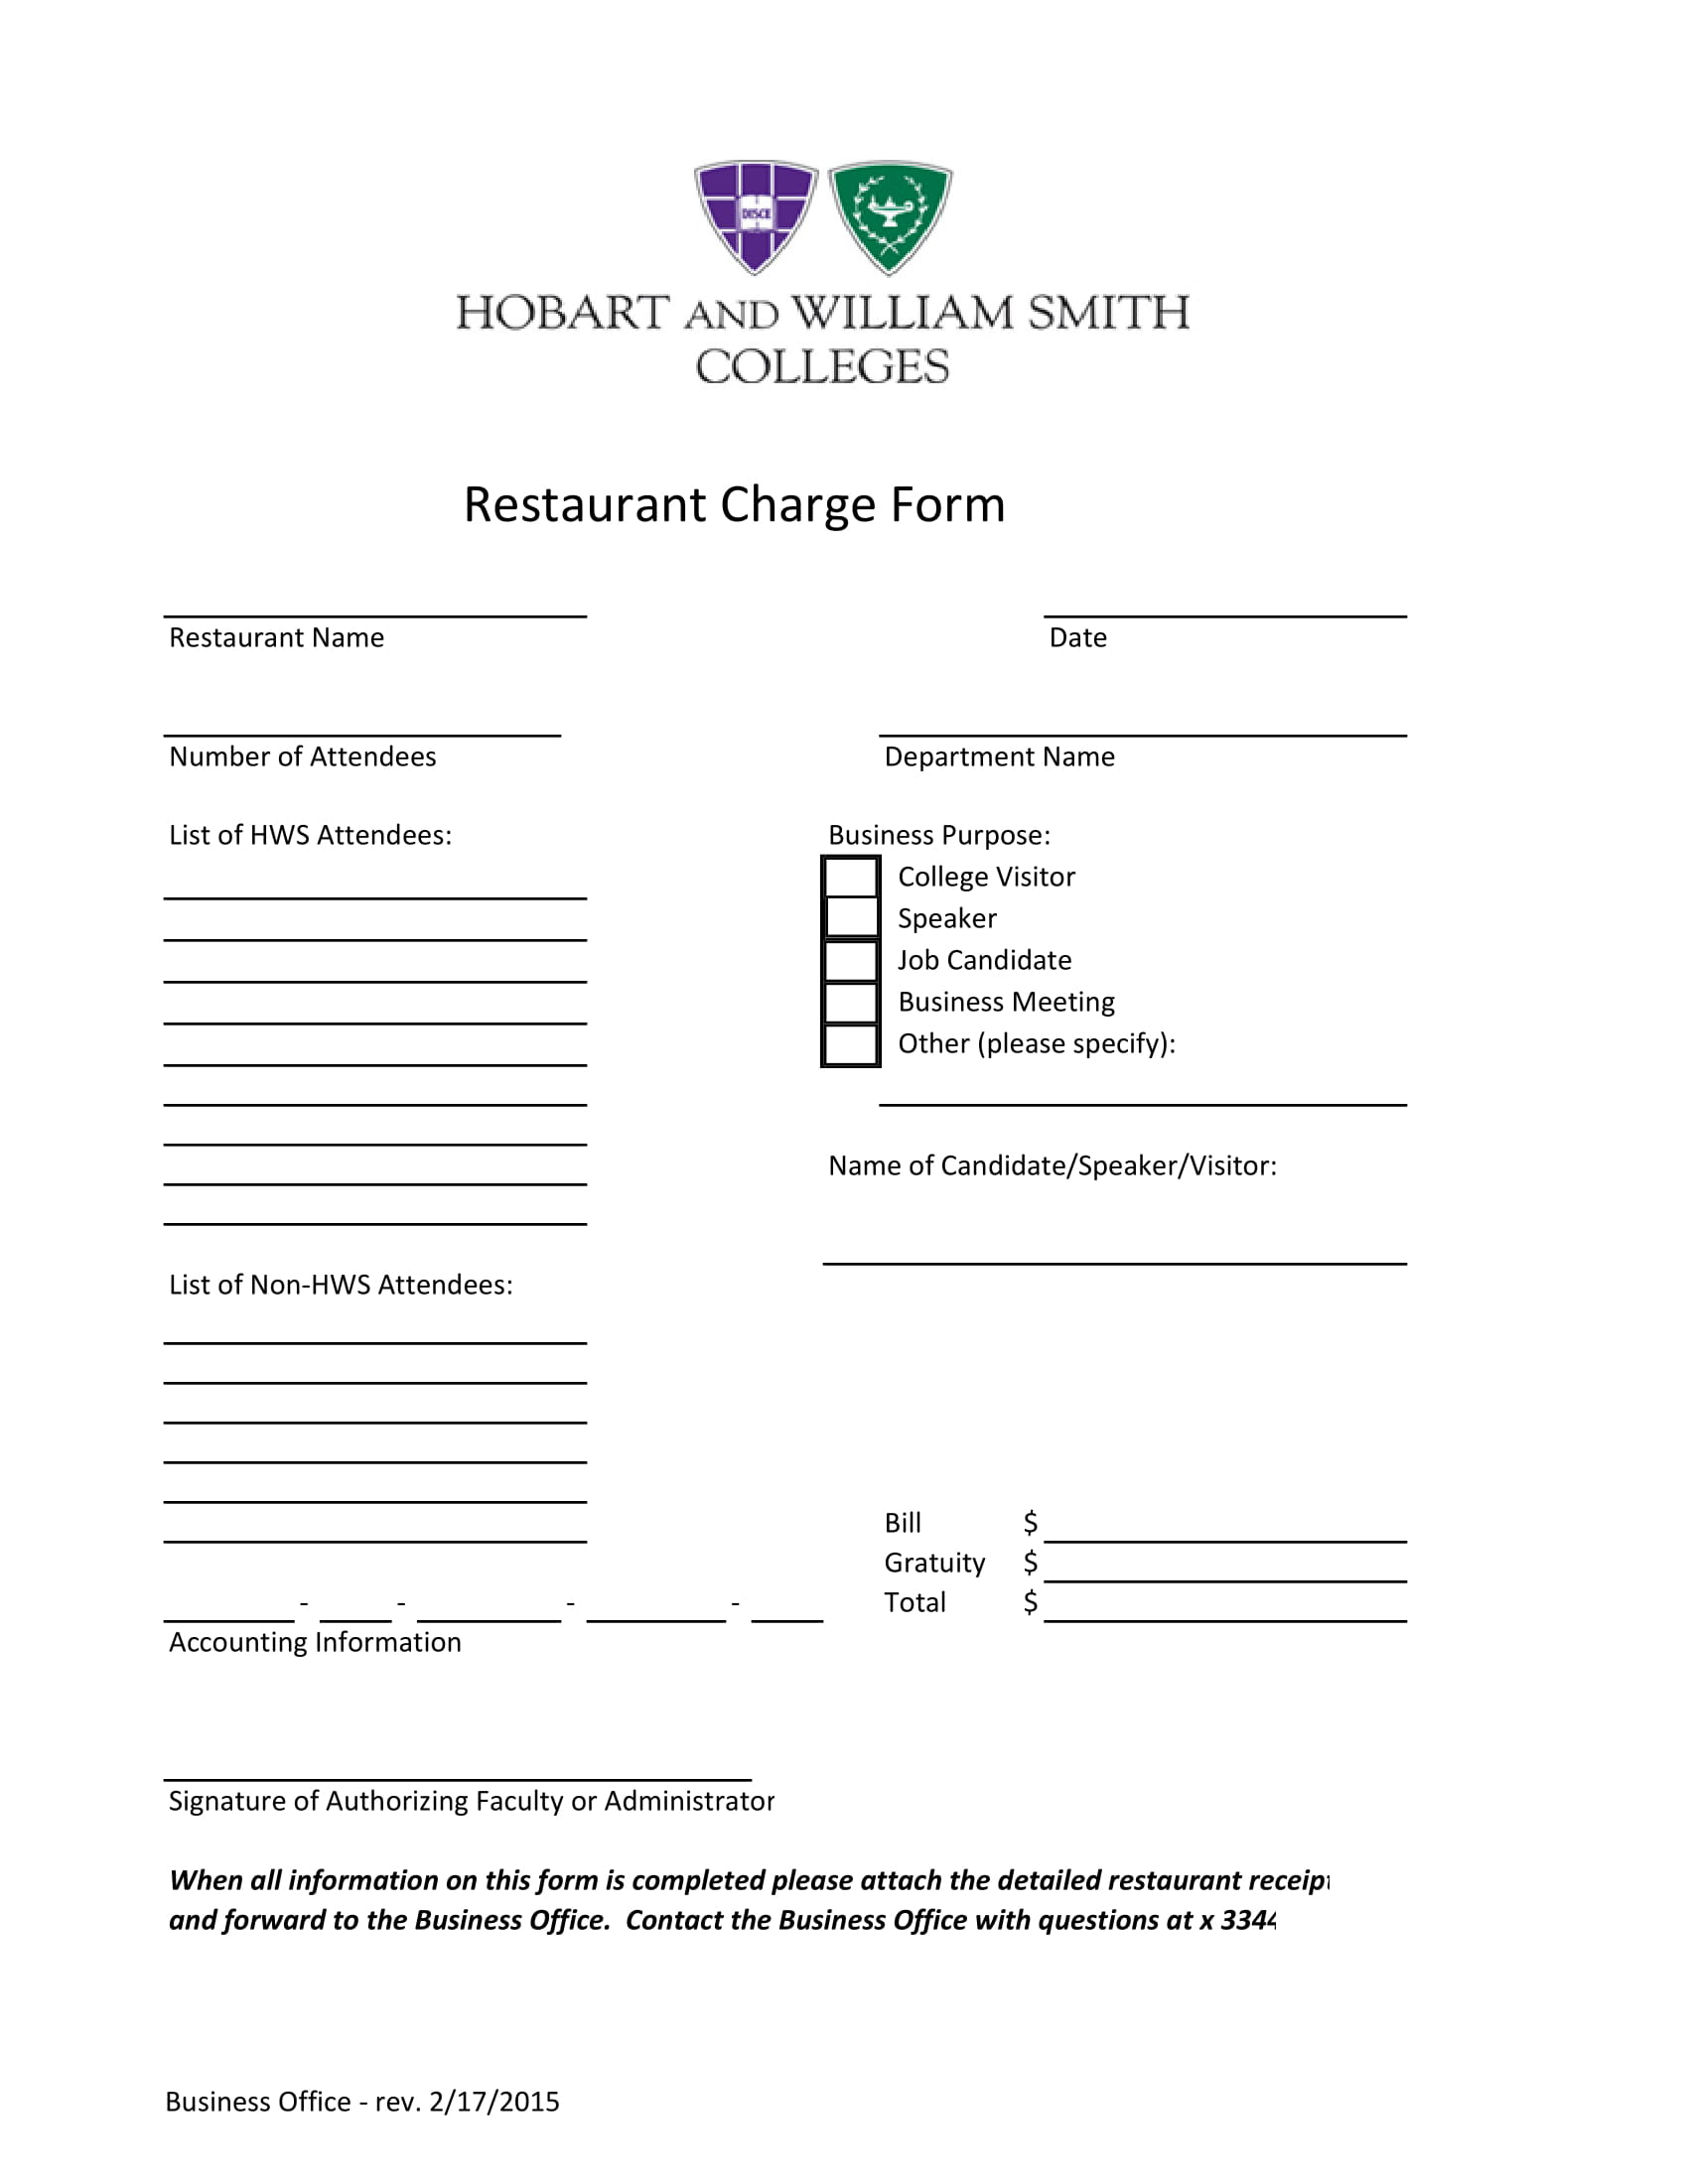 restaurant charge form 1